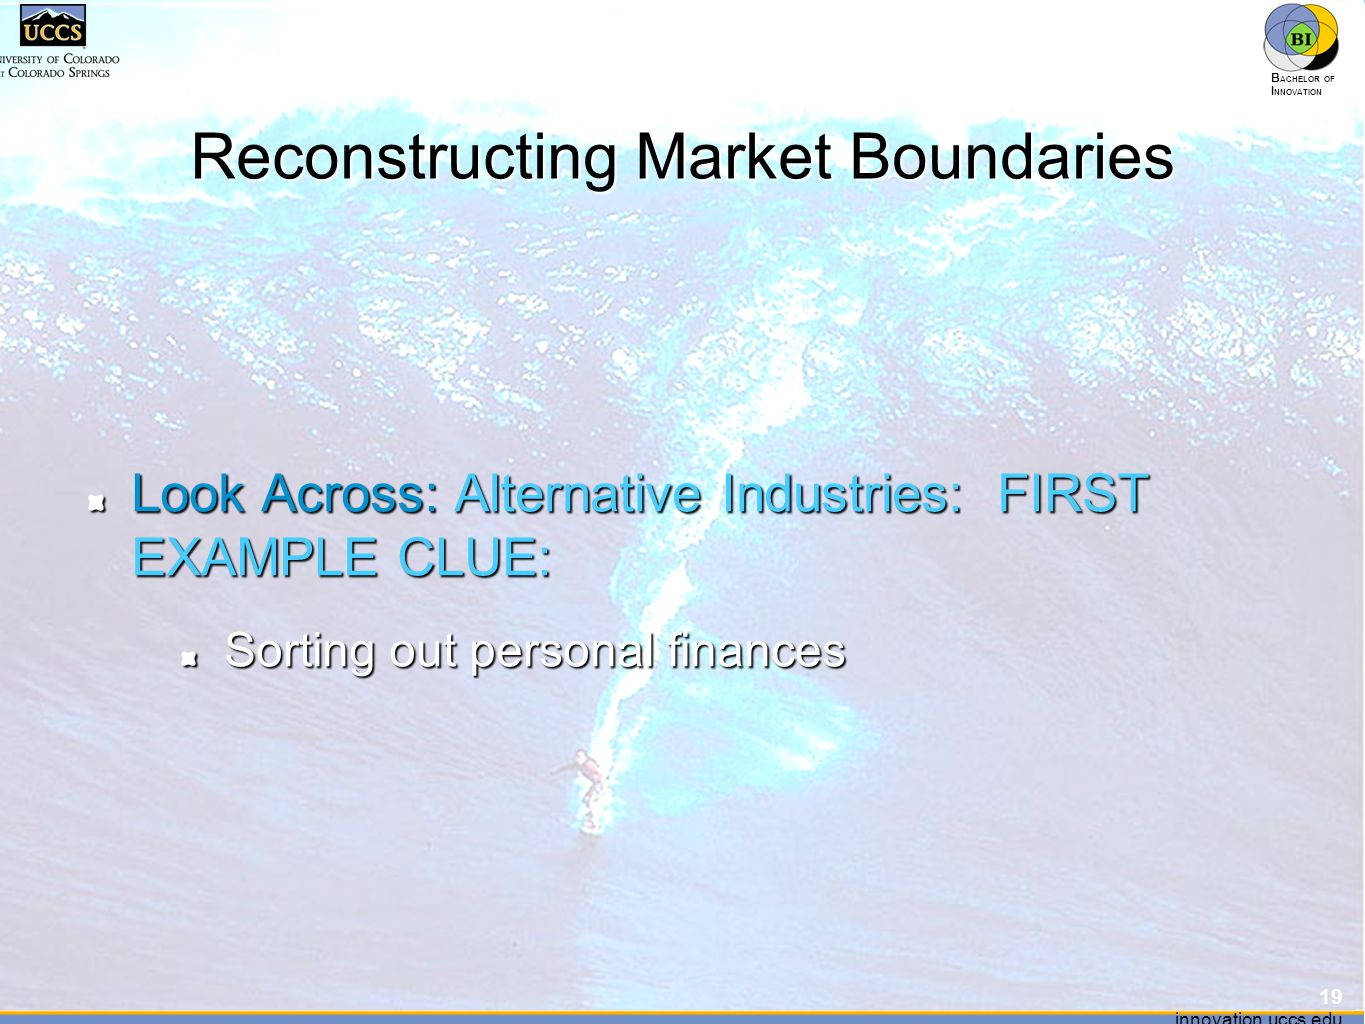 innovation.uccs.edu B ACHELOR OF I NNOVATION ™ innovation.uccs.edu B ACHELOR OF I NNOVATION ™ Reconstructing Market Boundaries Look Across: Alternative Industries: FIRST EXAMPLE CLUE: Sorting out personal finances 19